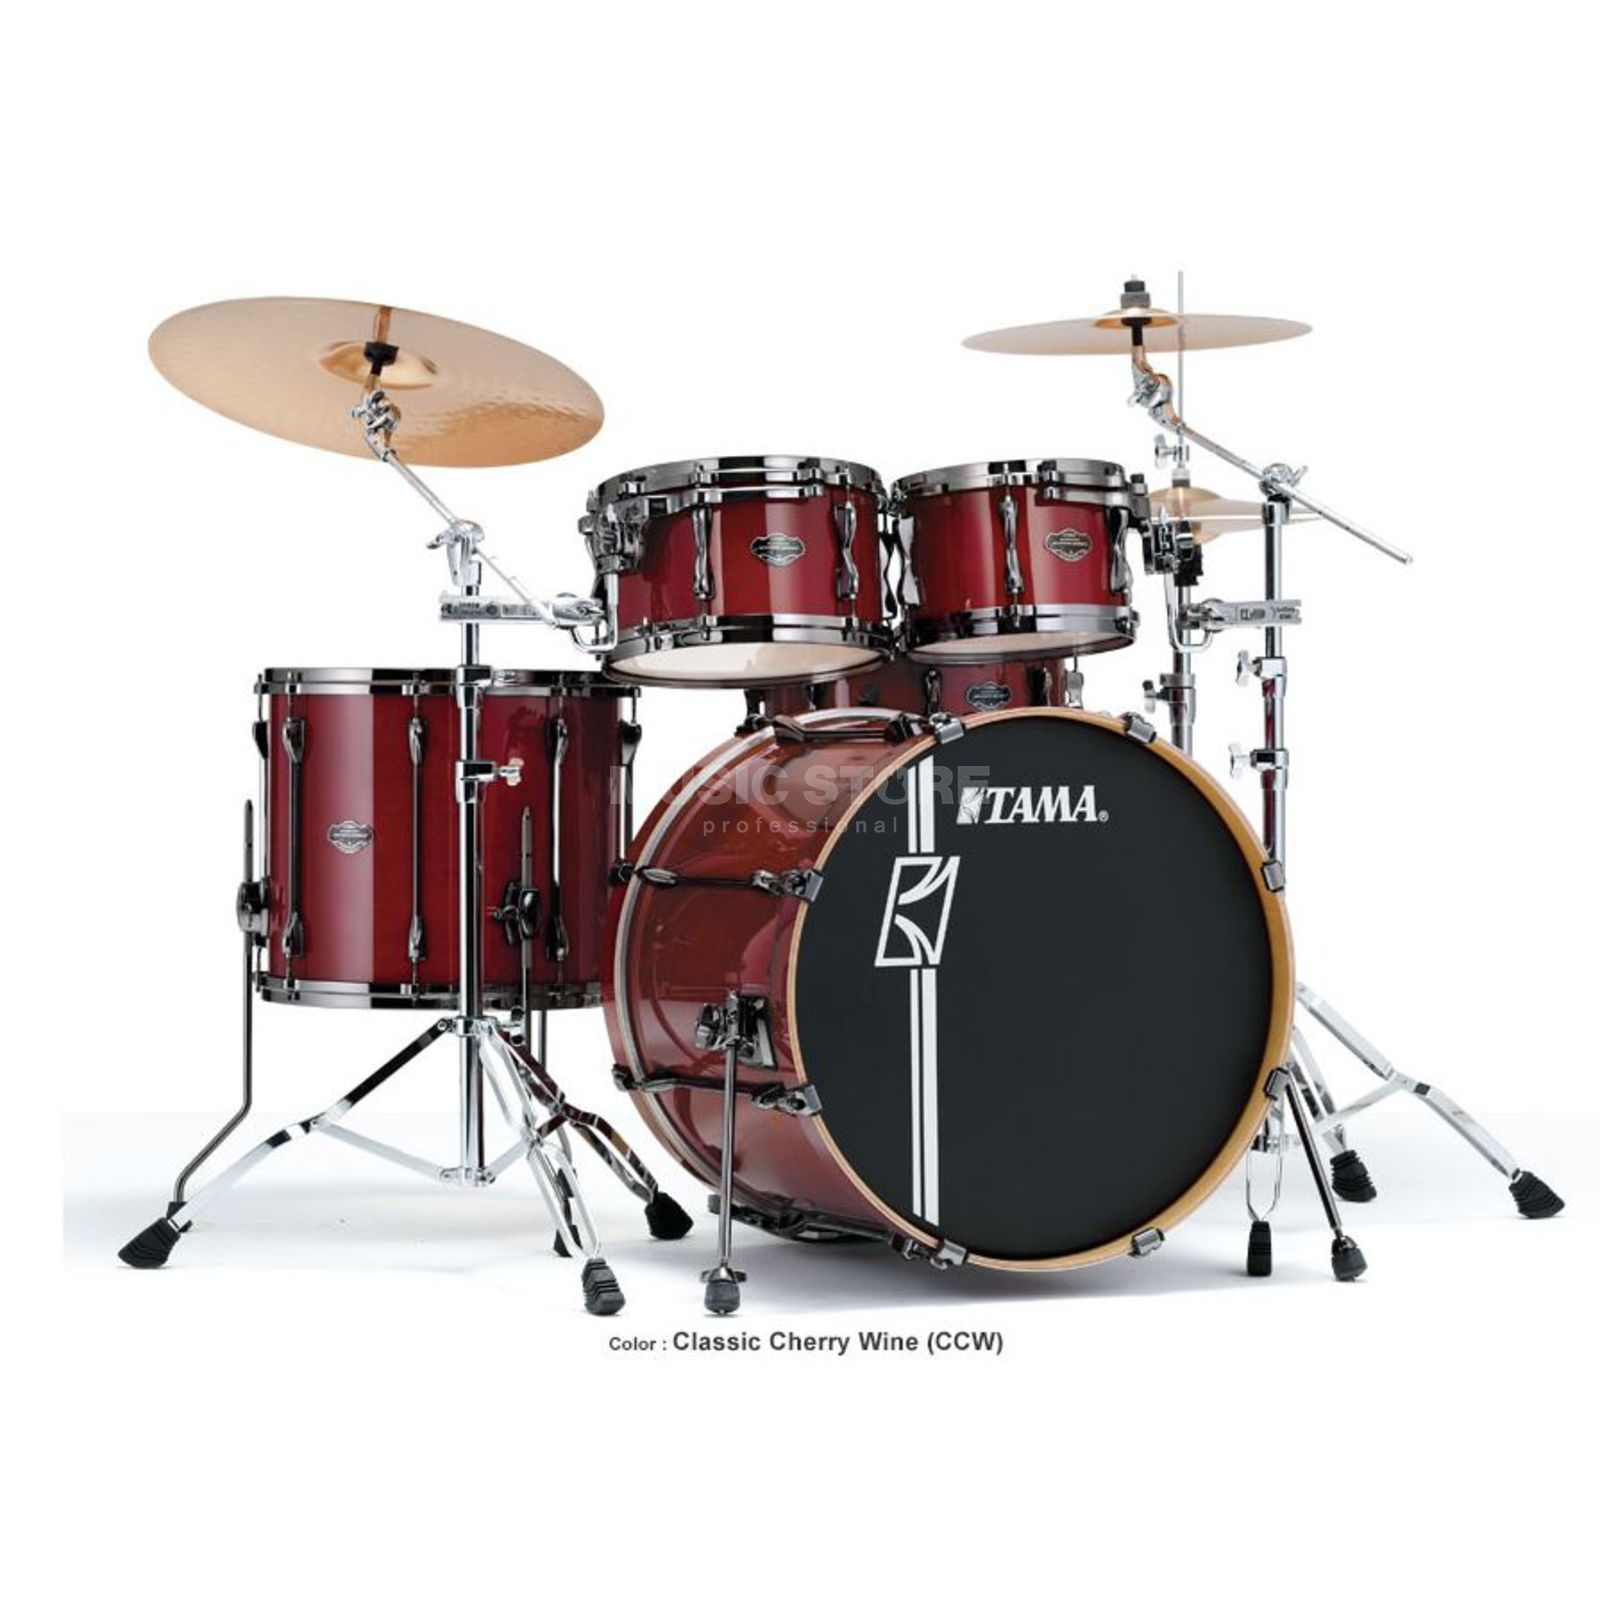 Tama Superstar HD Maple ML52HZBN, Classic Cherry Wine, CCW Productafbeelding